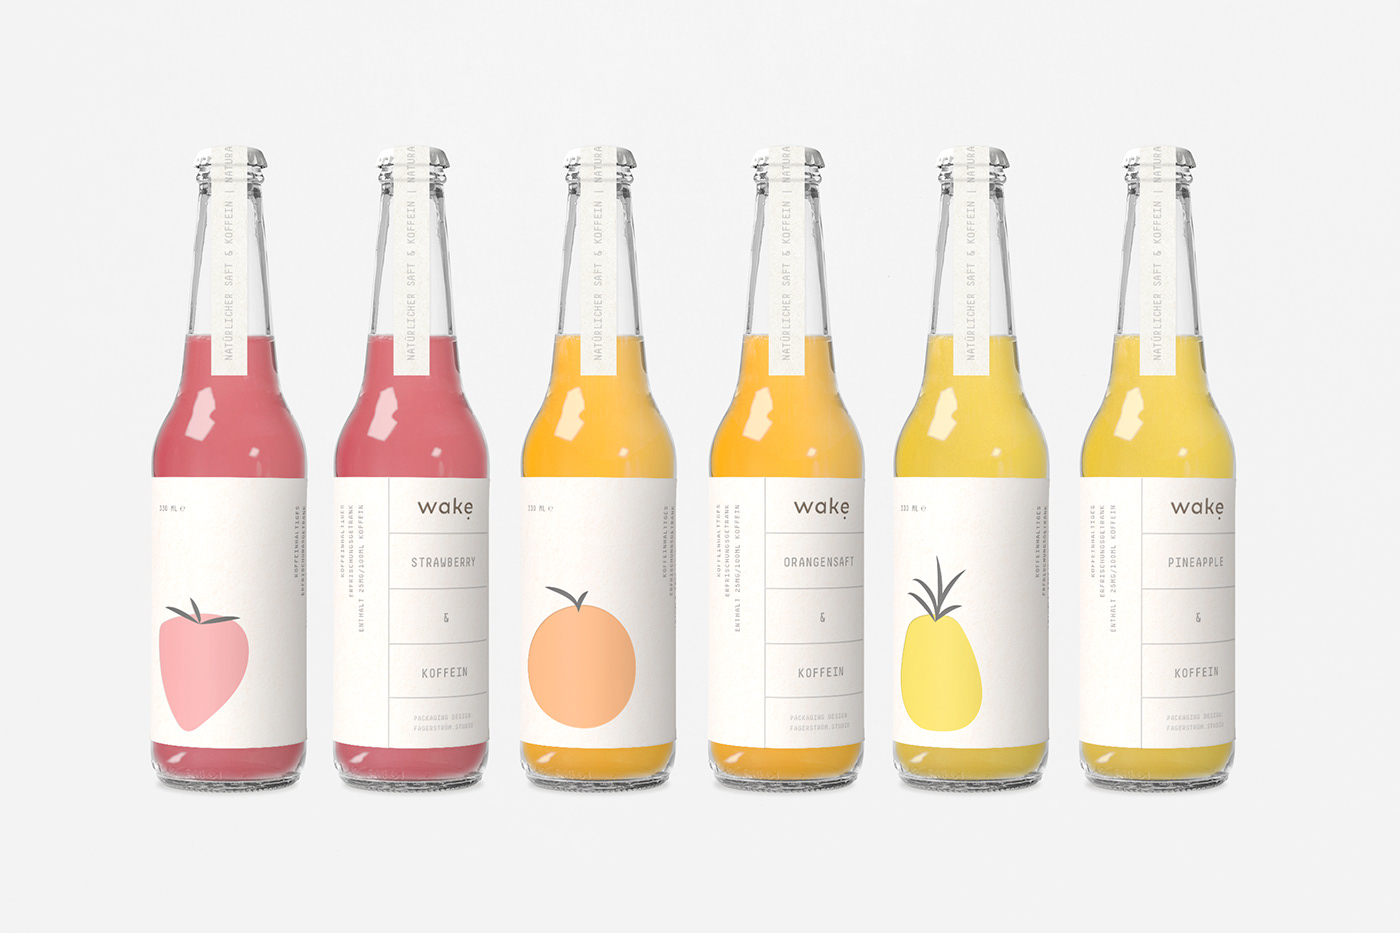 Functional Drink Developed in Germany that Contains Fruit Juice and Caffeine